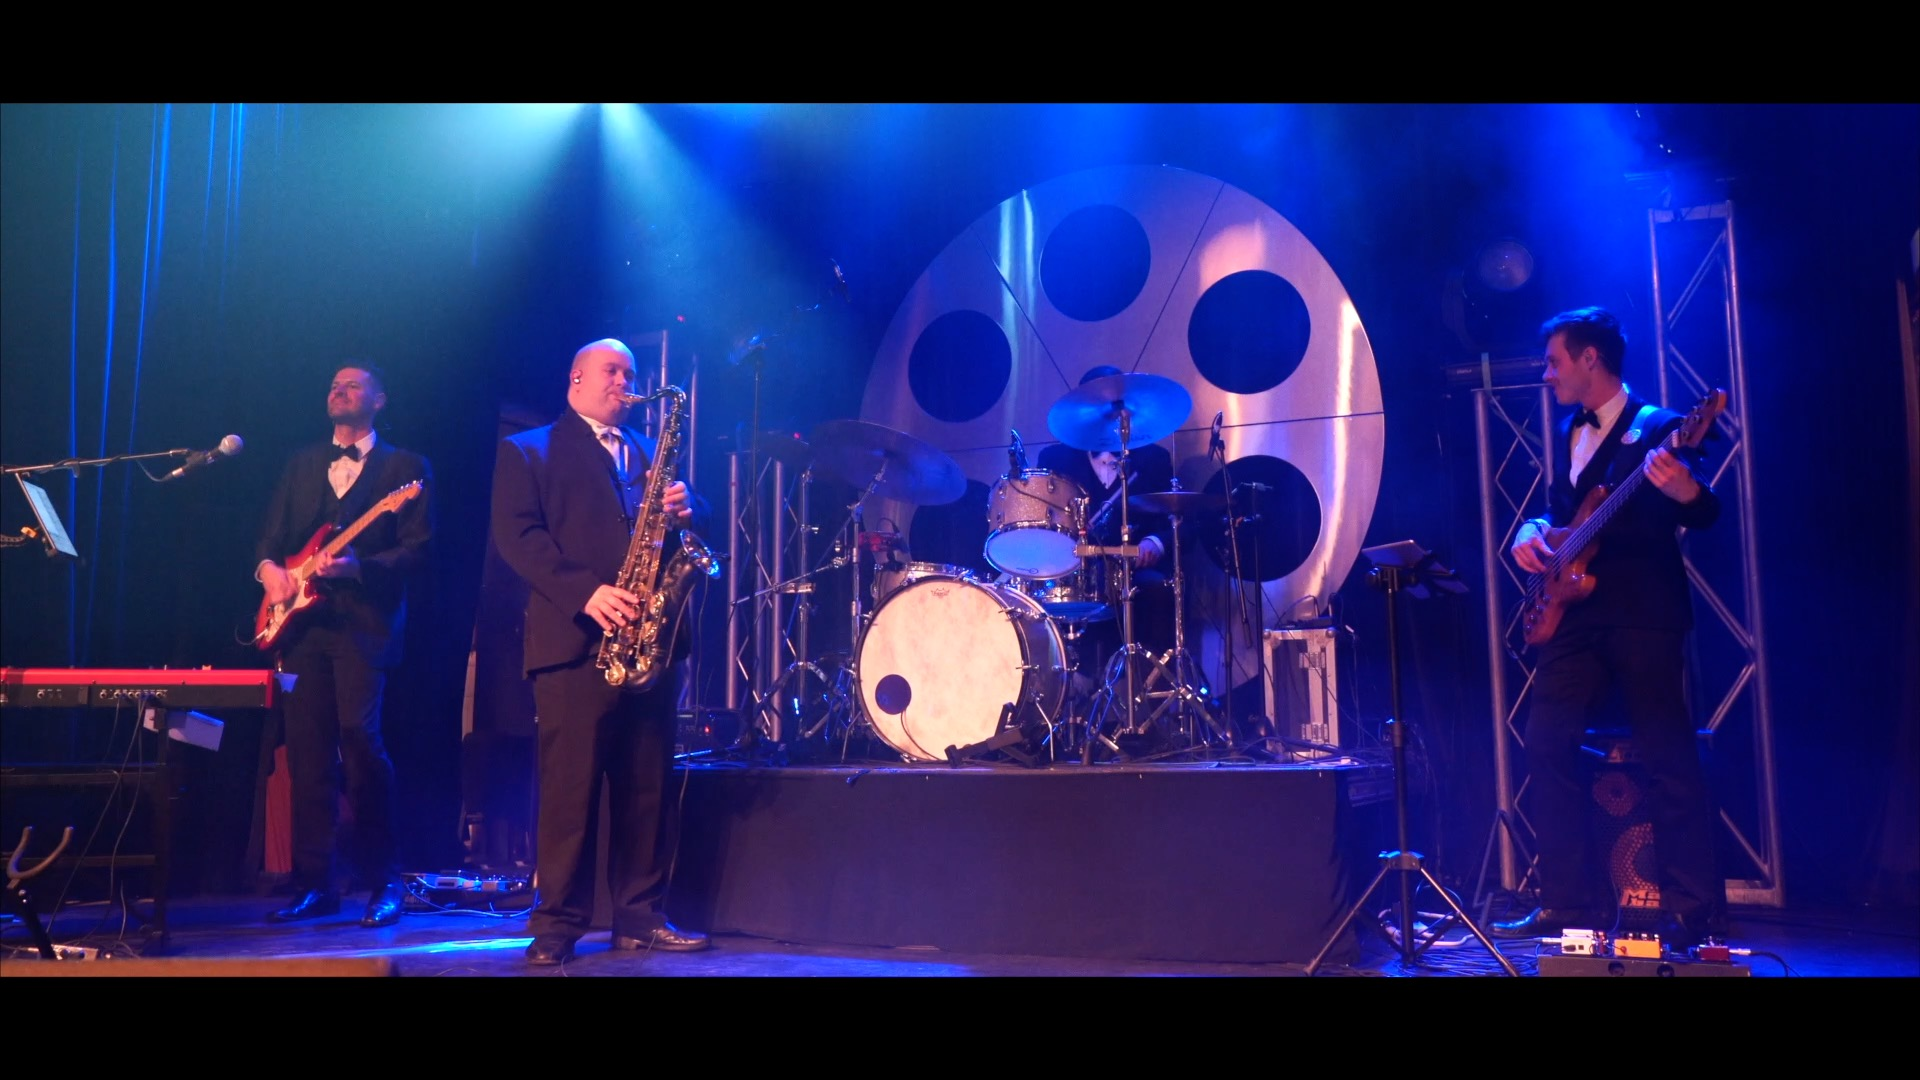 Souper-spectacle jazz - Quartet jazz pour evenement corporatif